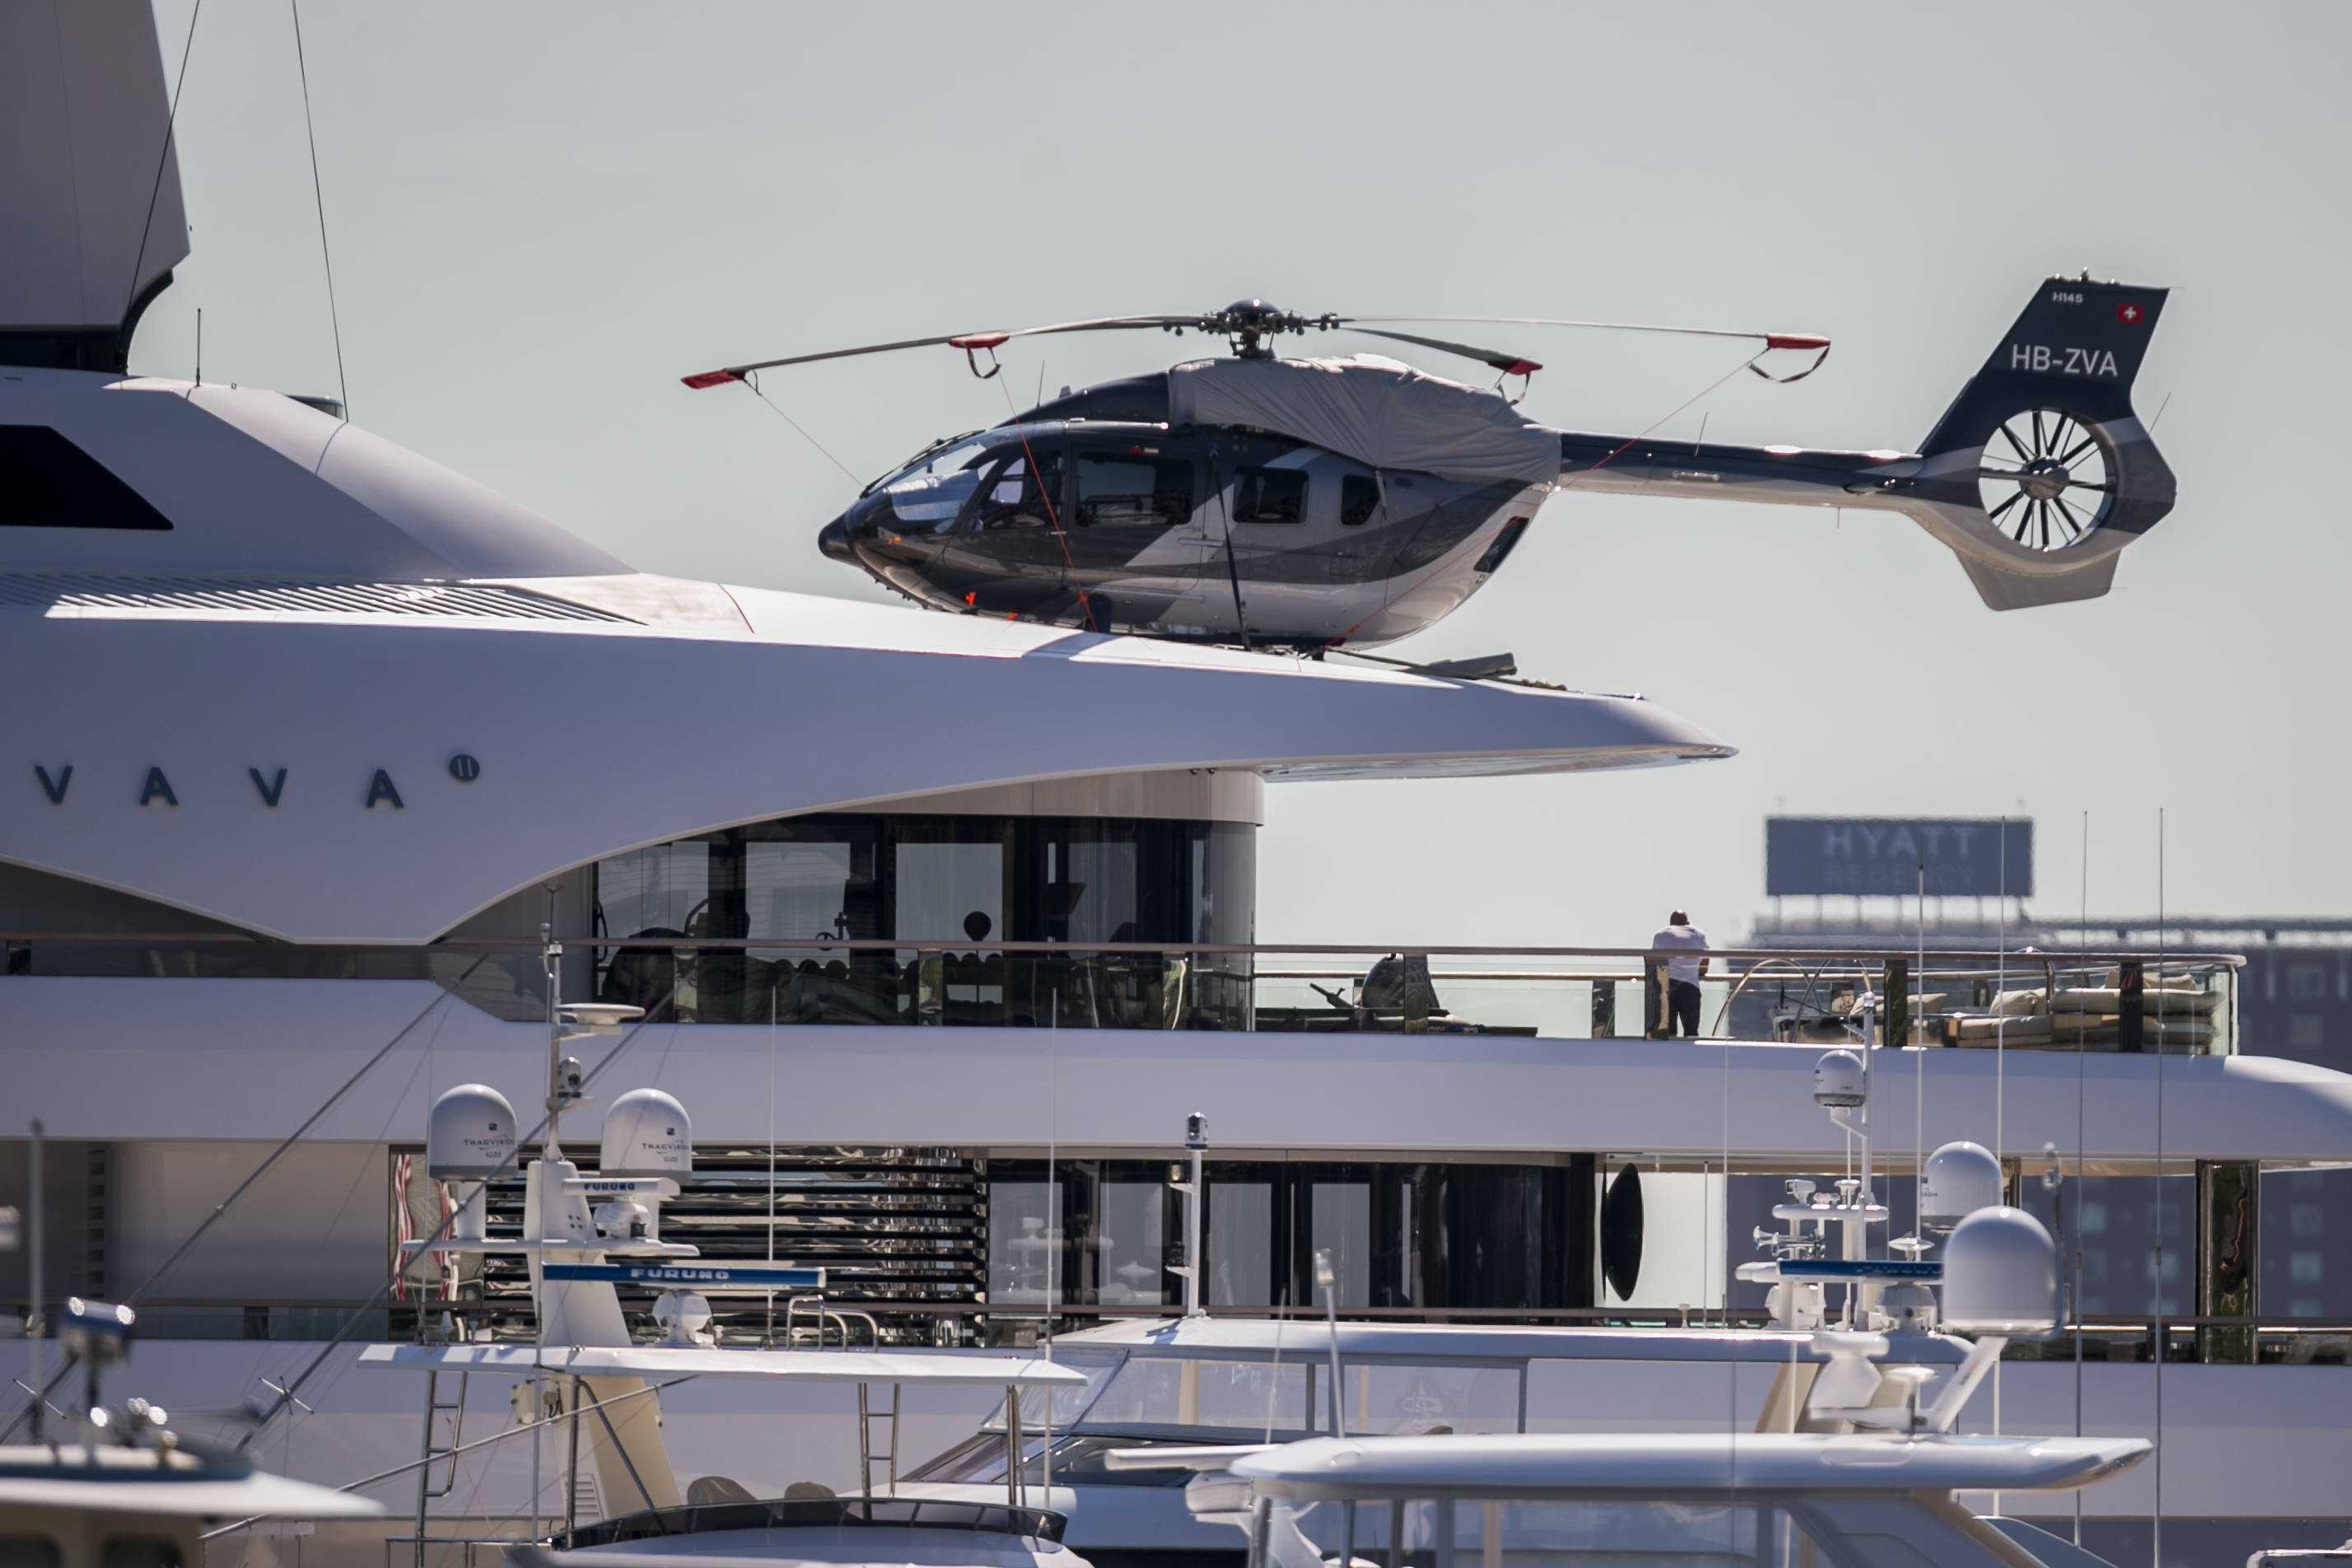 That's one big (and expensive) yacht: Vava II visits Boston